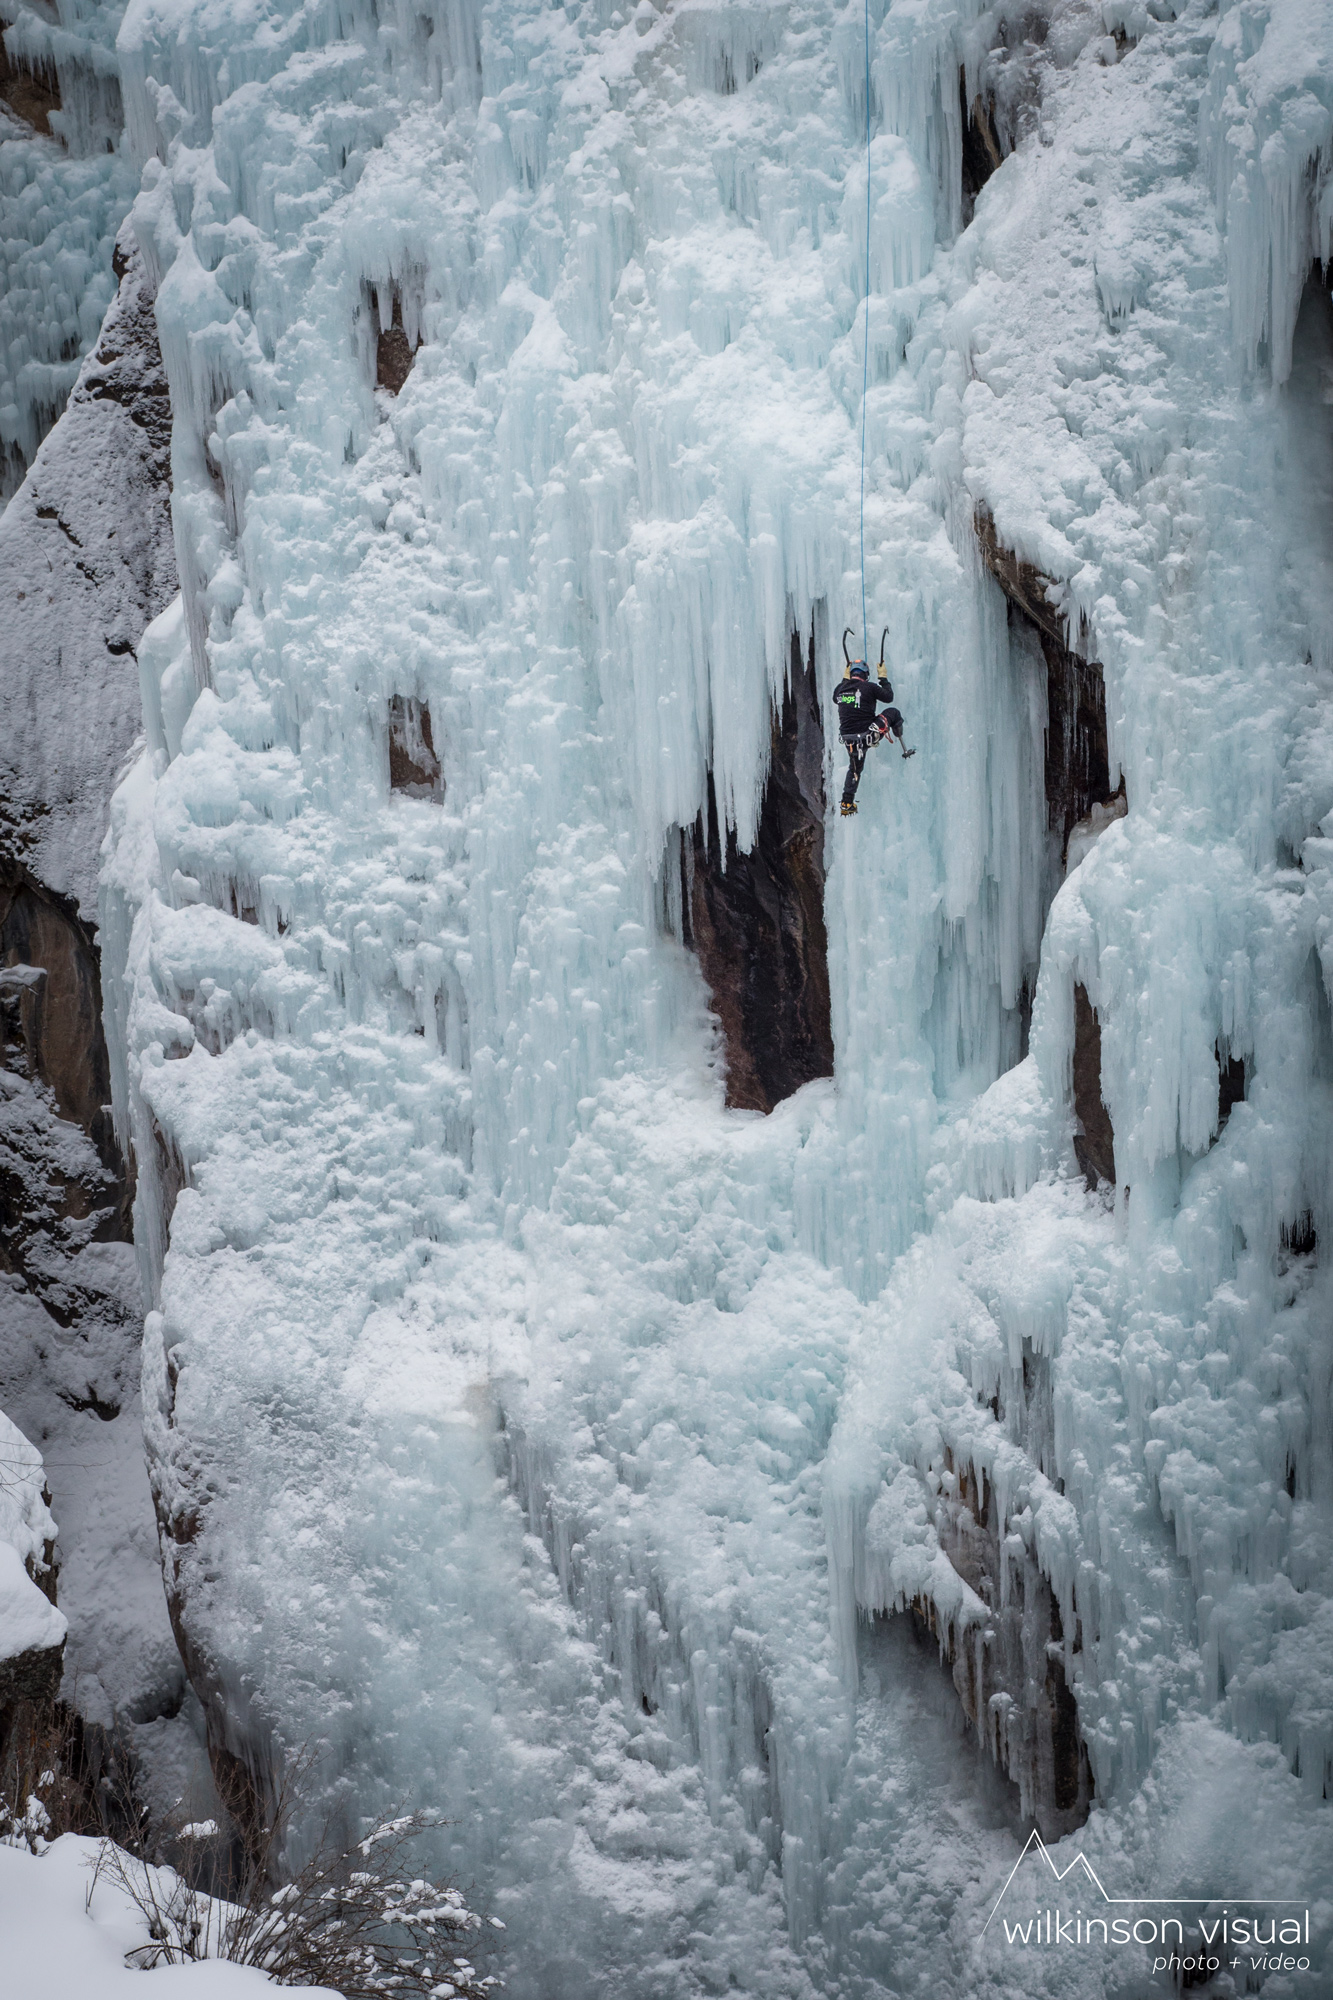 Amputee Jeff Bryan climbs at the Ouray Ice Park.